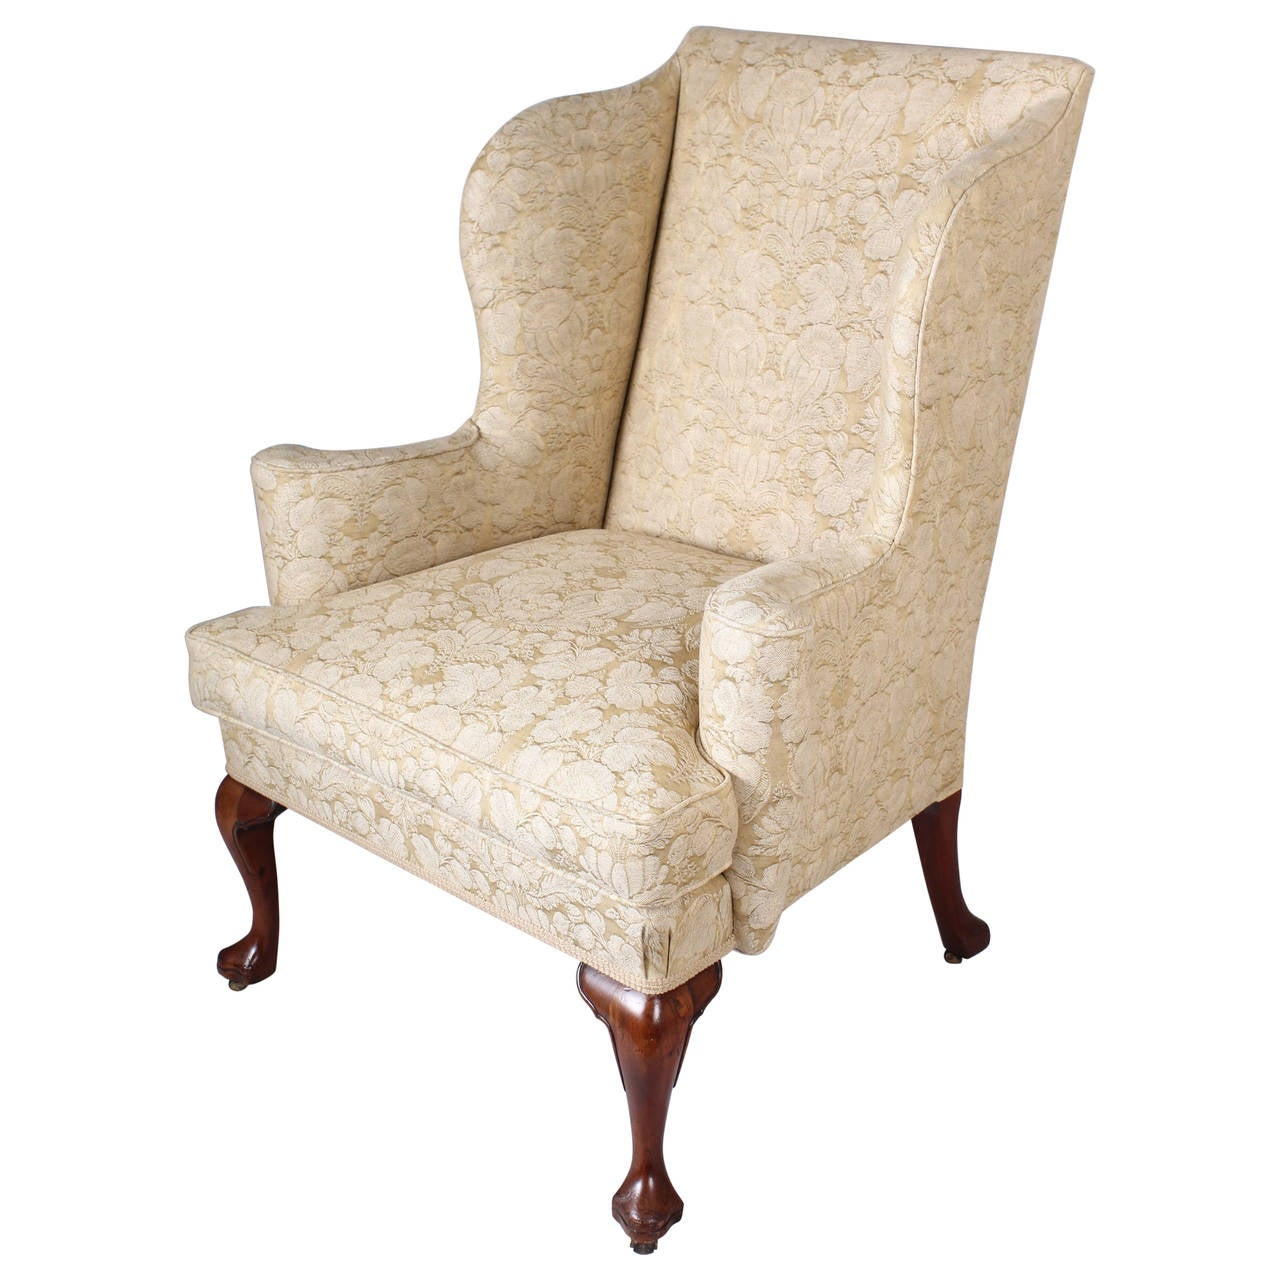 queen anne style chairs wheelchair in french wingback chair on walnut cabriole legs the classic